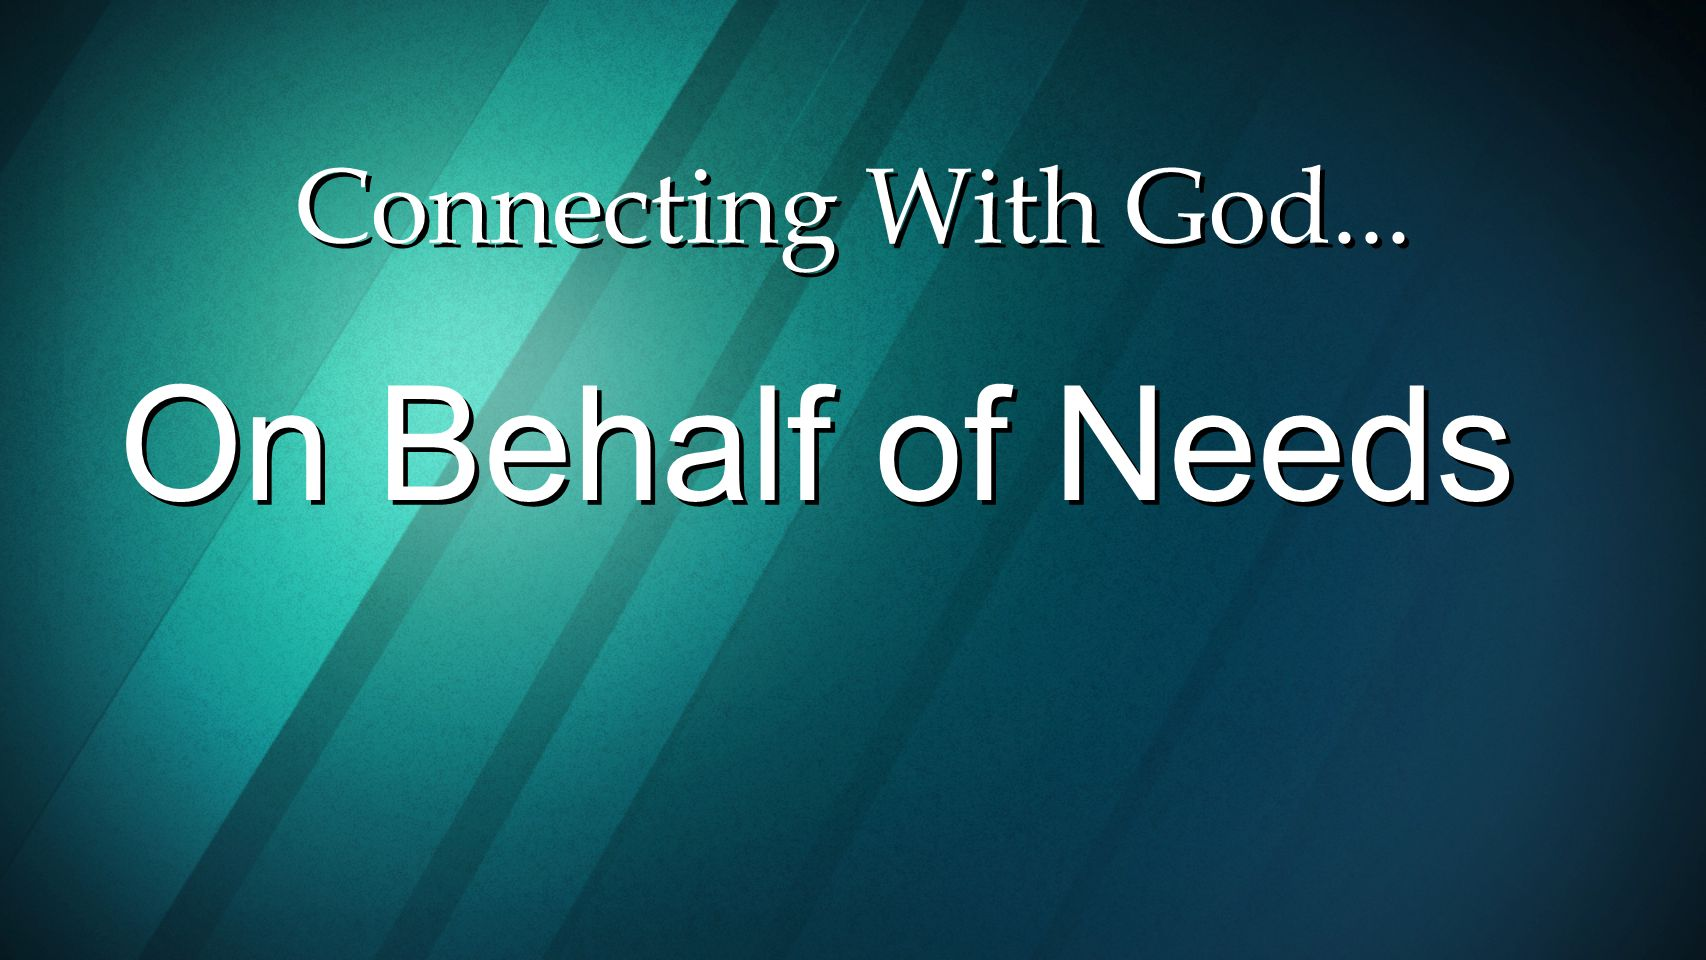 Connecting With God... On Behalf of Needs